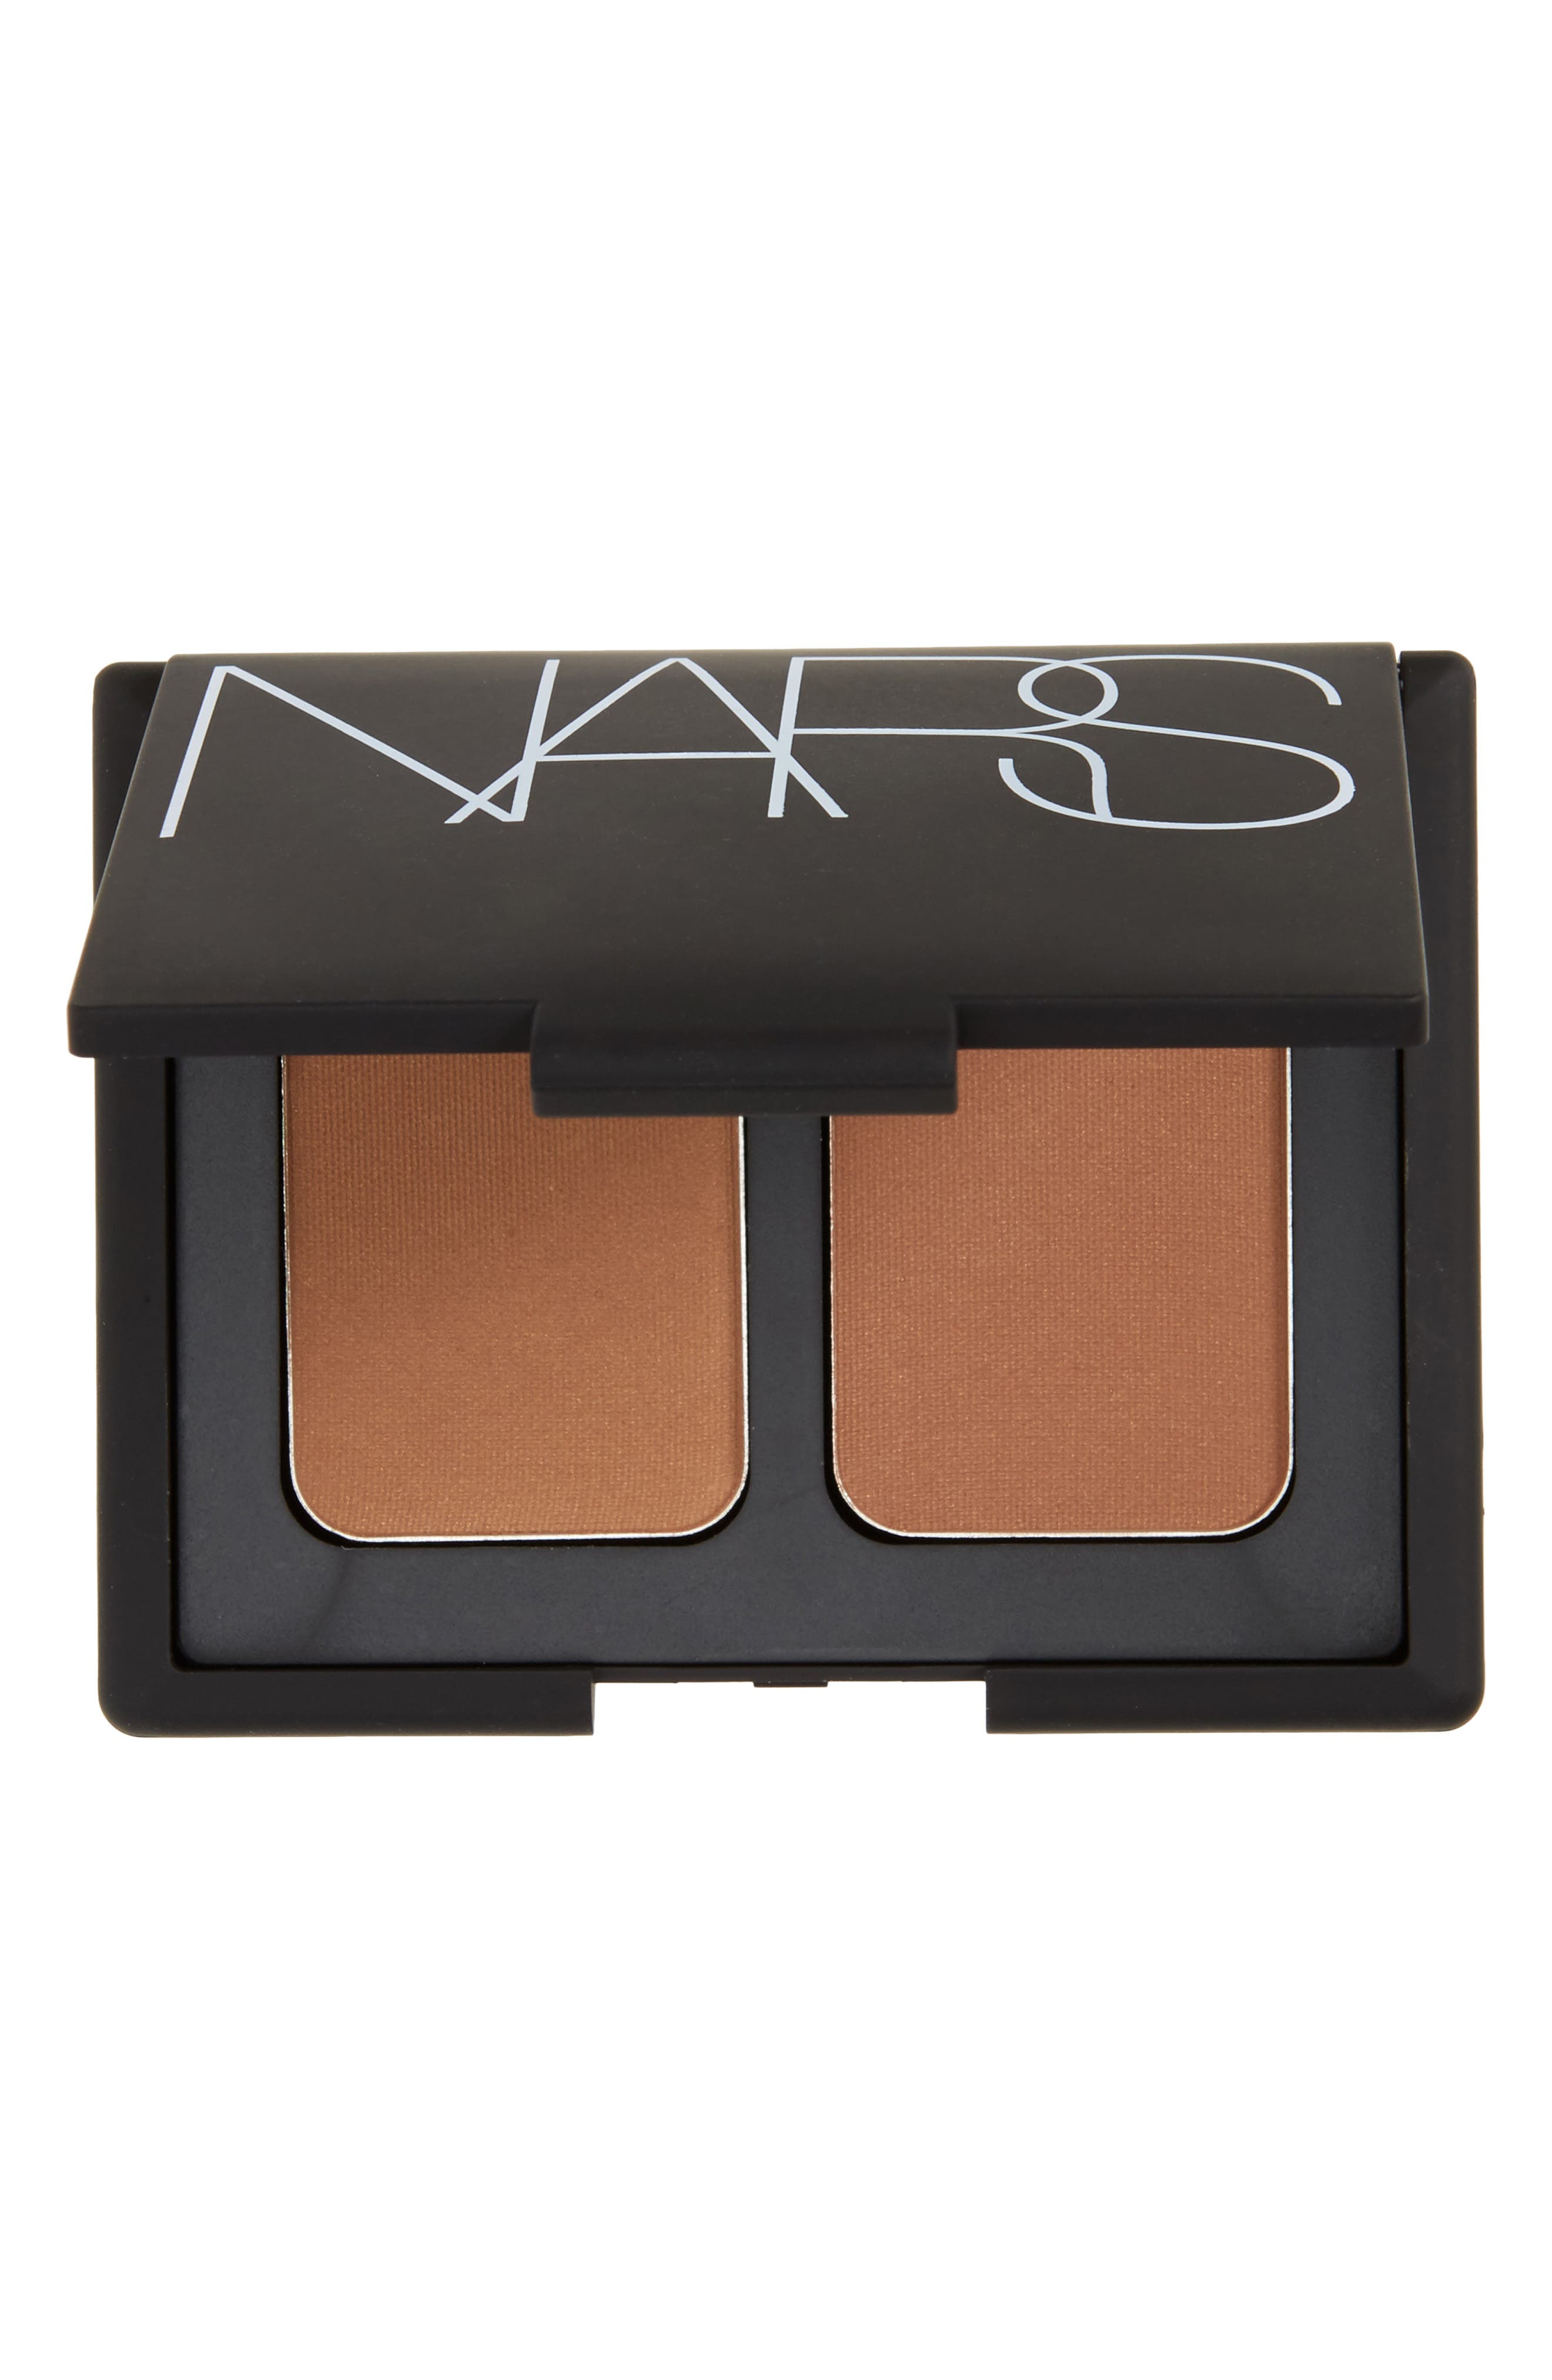 NARS Makeup for Face Eyes Lips